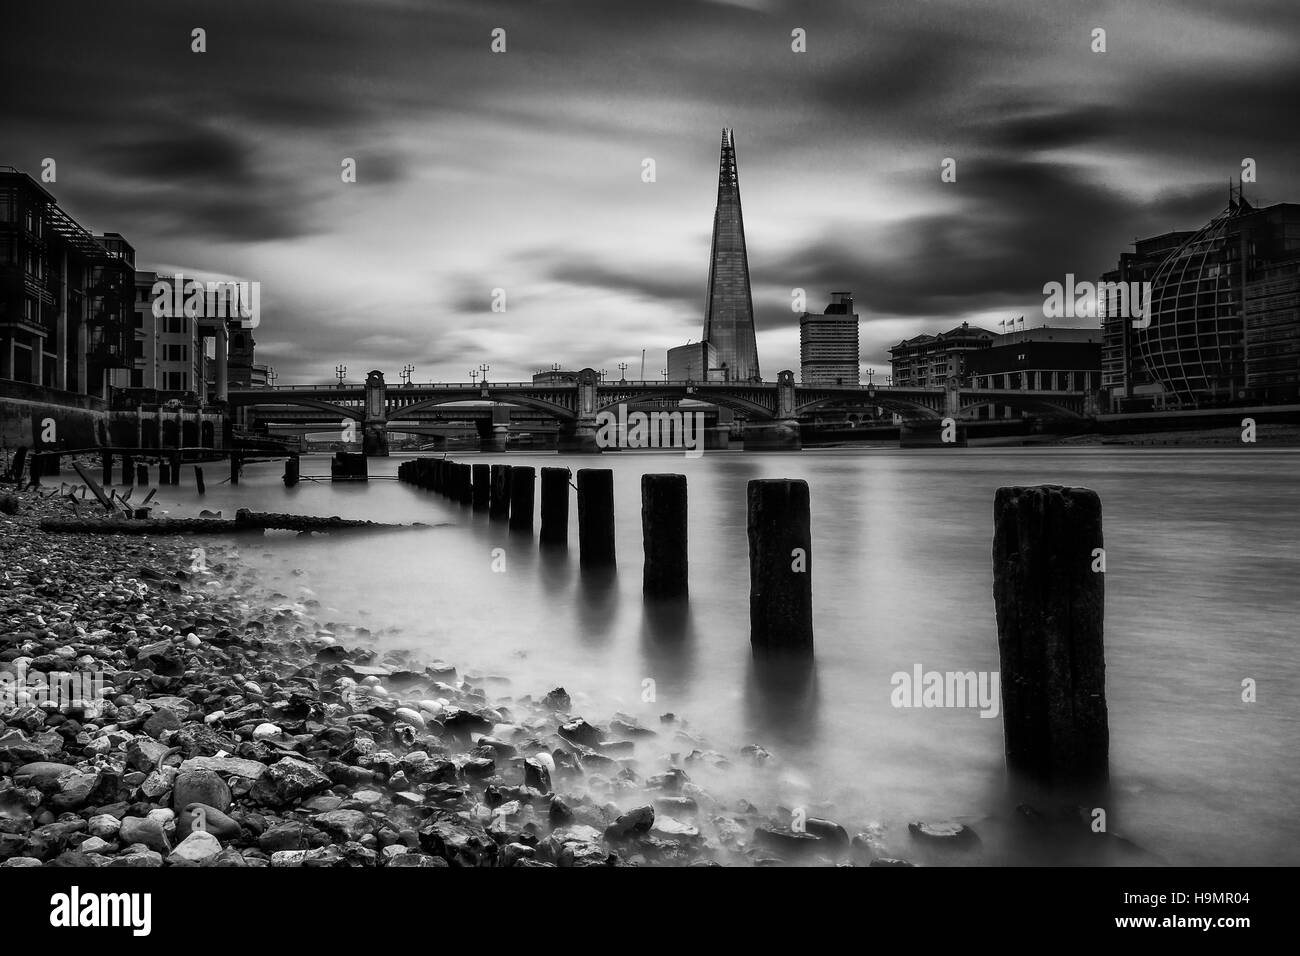 Low tide near Blackfriars in London - Stock Image